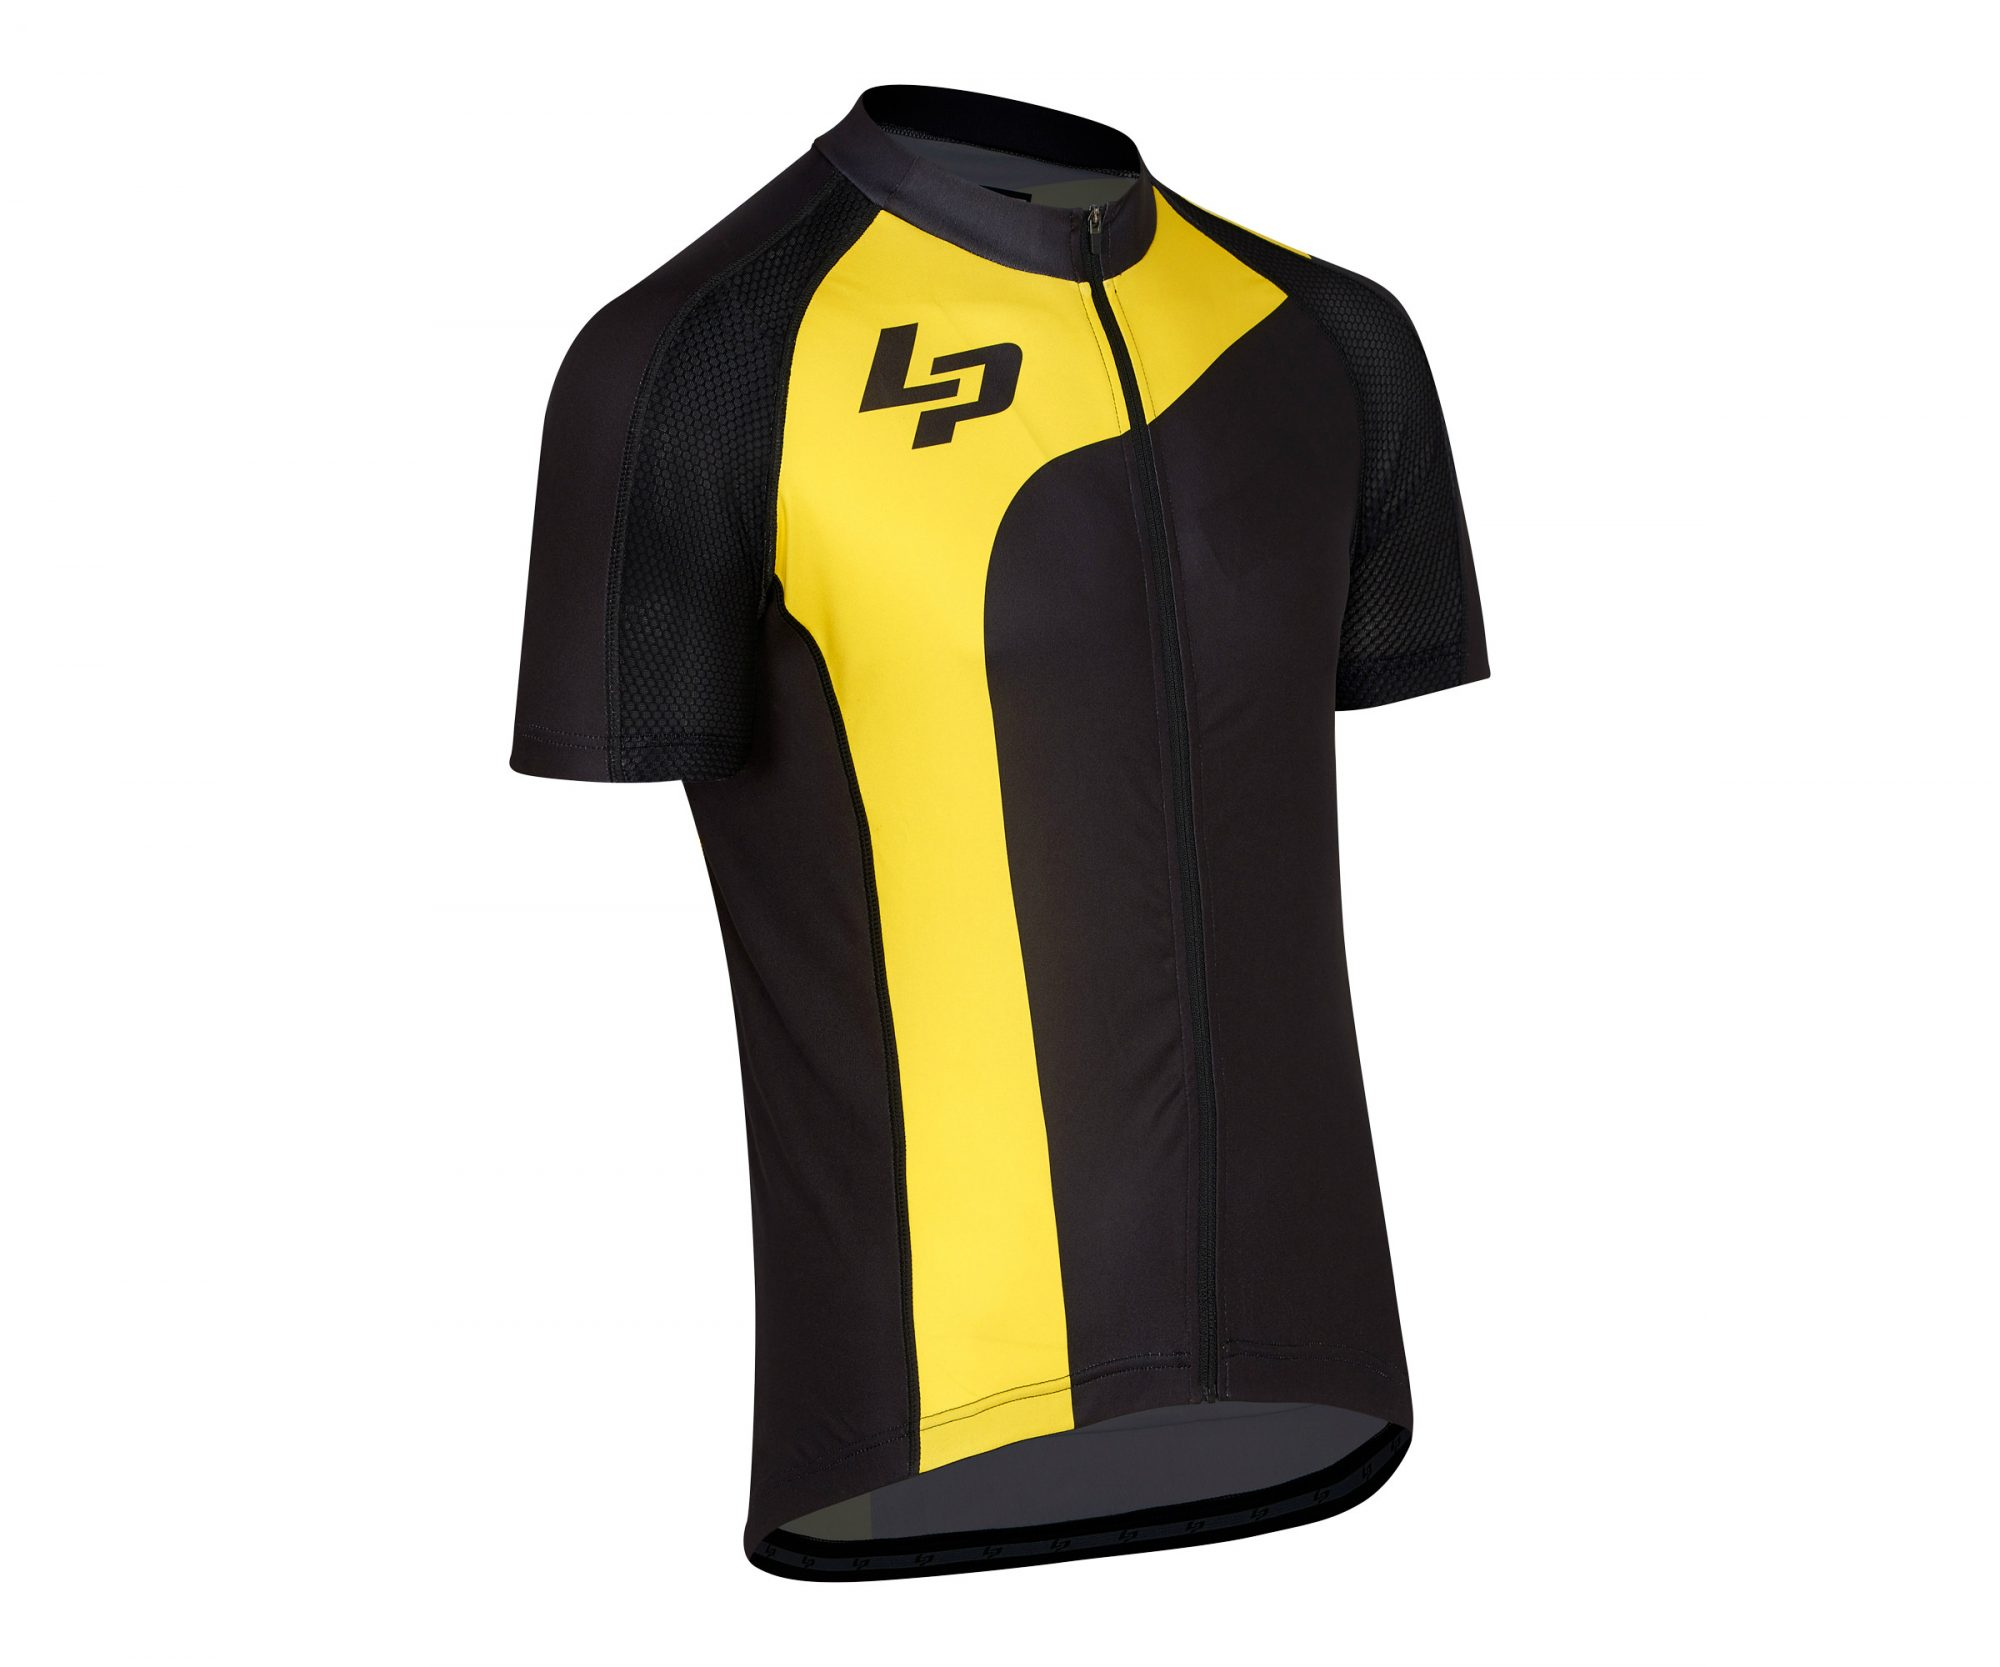 maillot route mc lapierre mustard 2017 - Velobrival